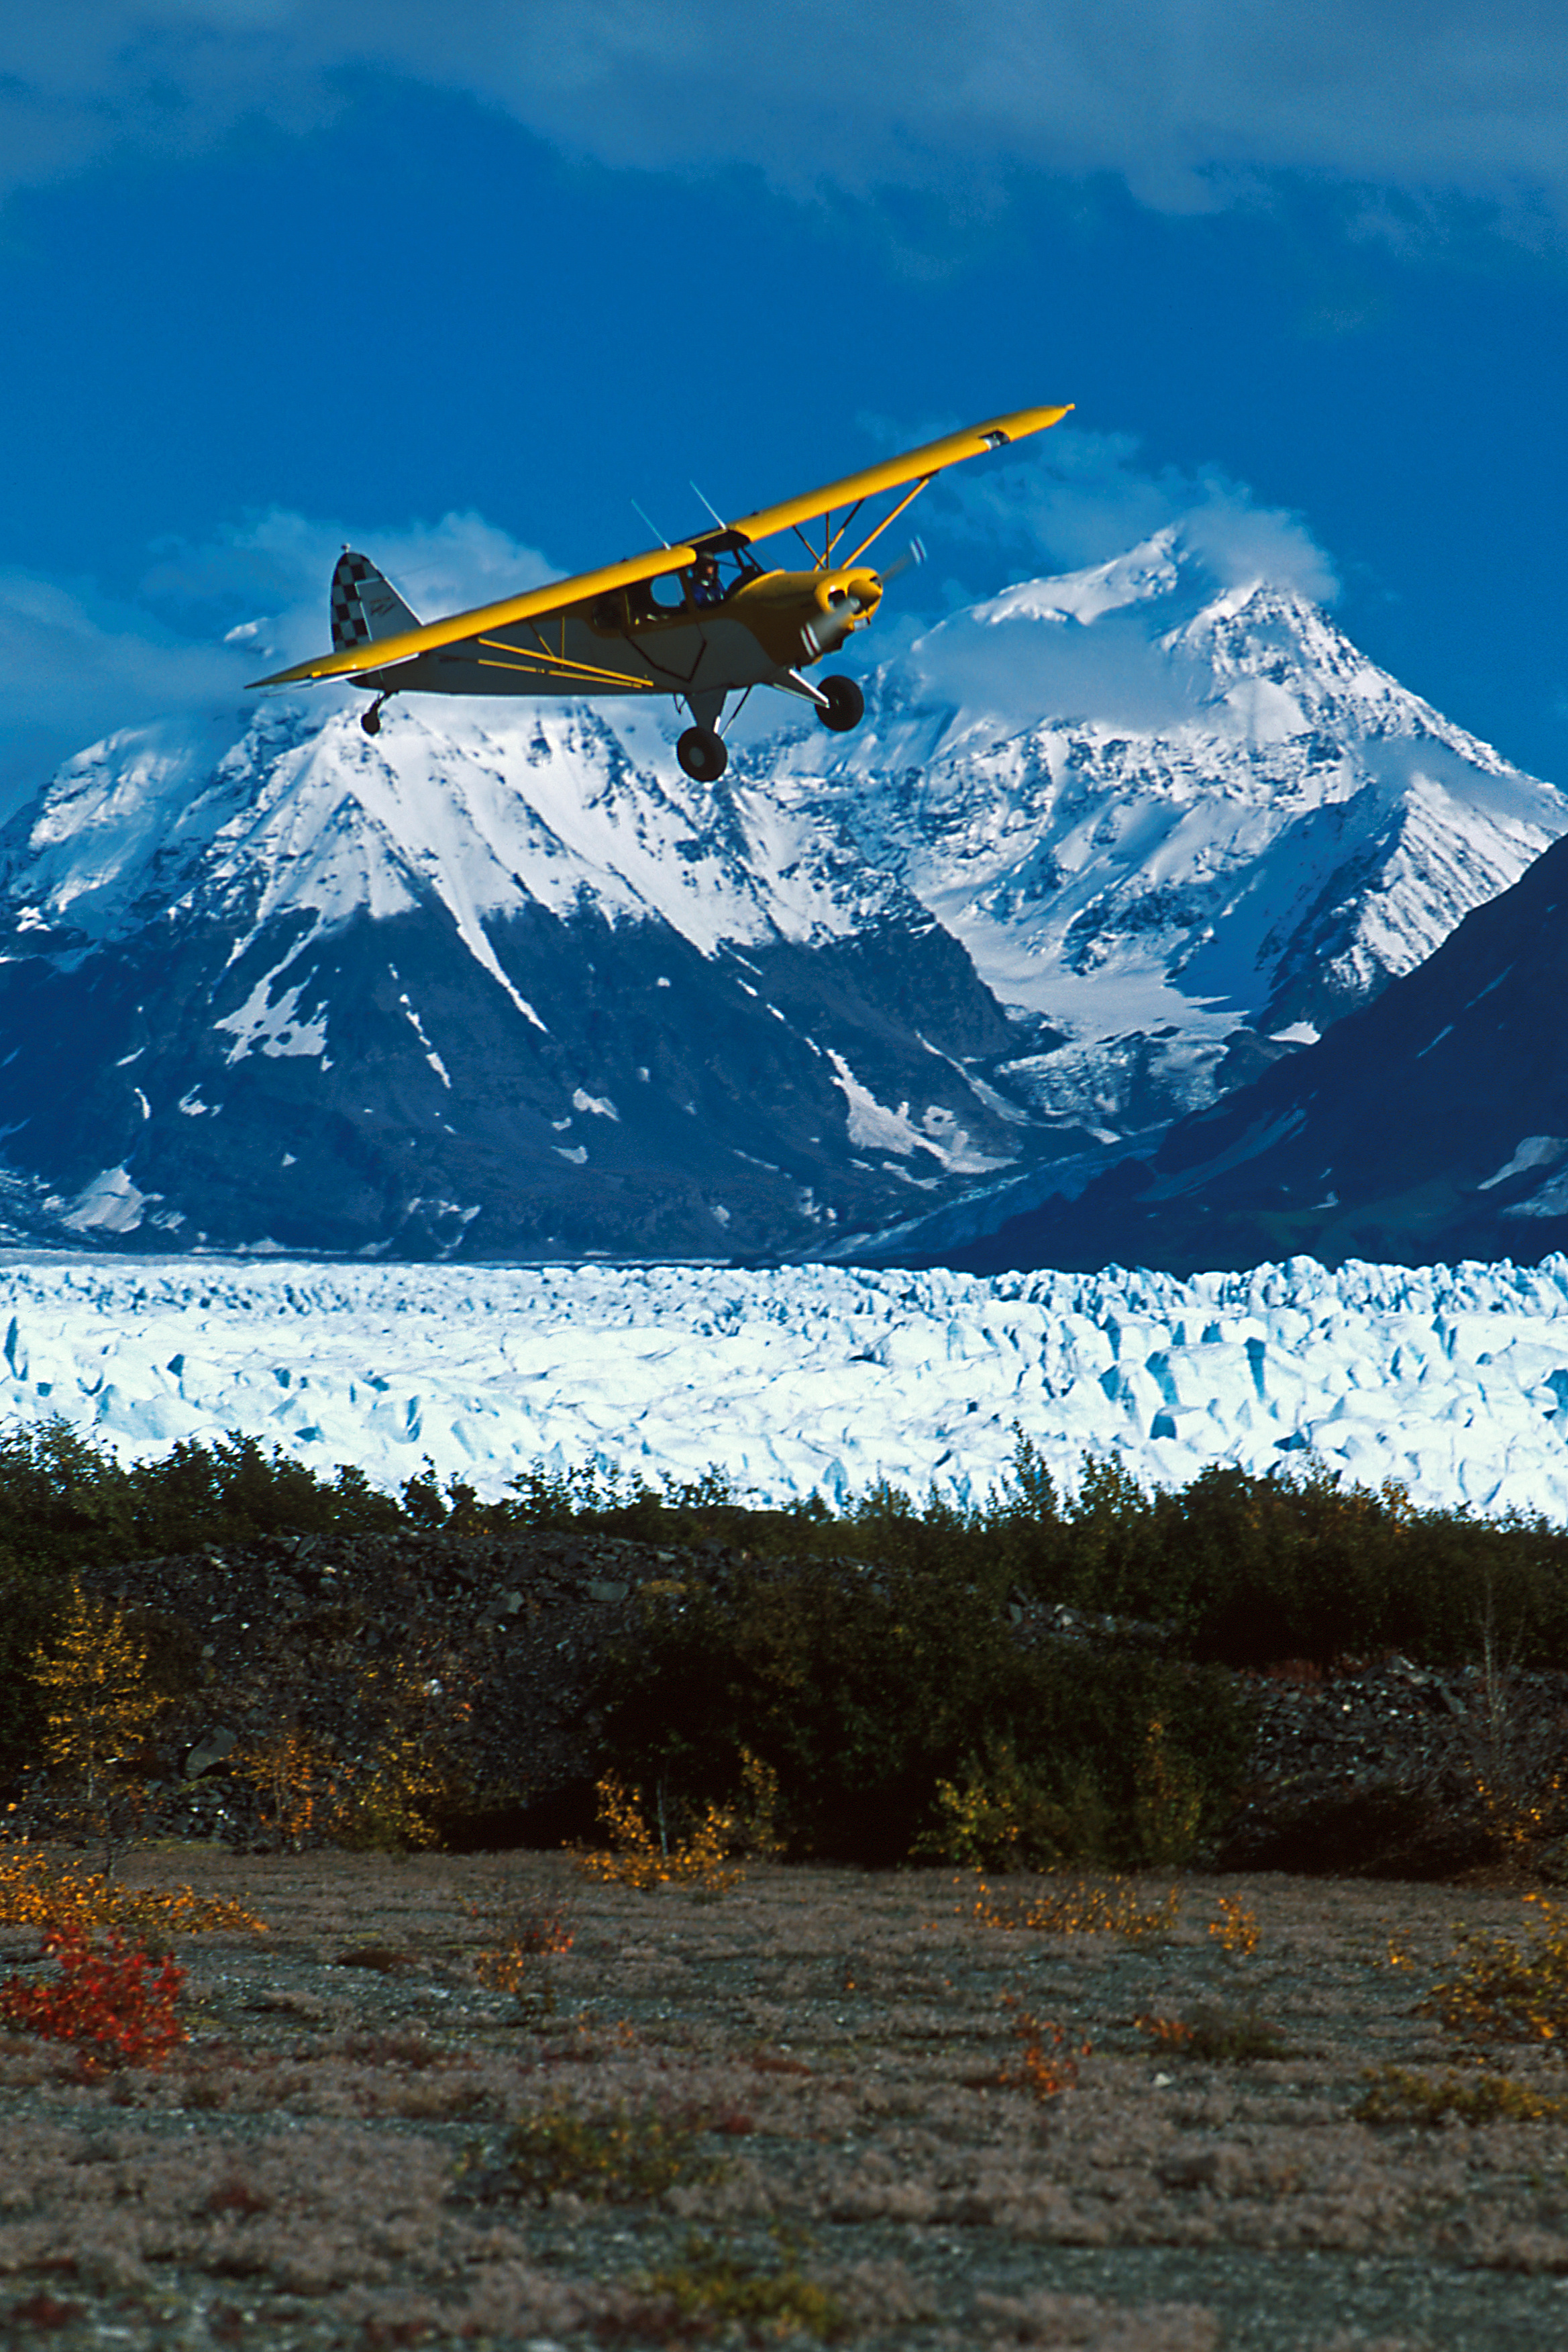 Alaska bush plane landing at Knik Glacier Picknick Table Strip, Alaska, Knik Glacier, near Palmer